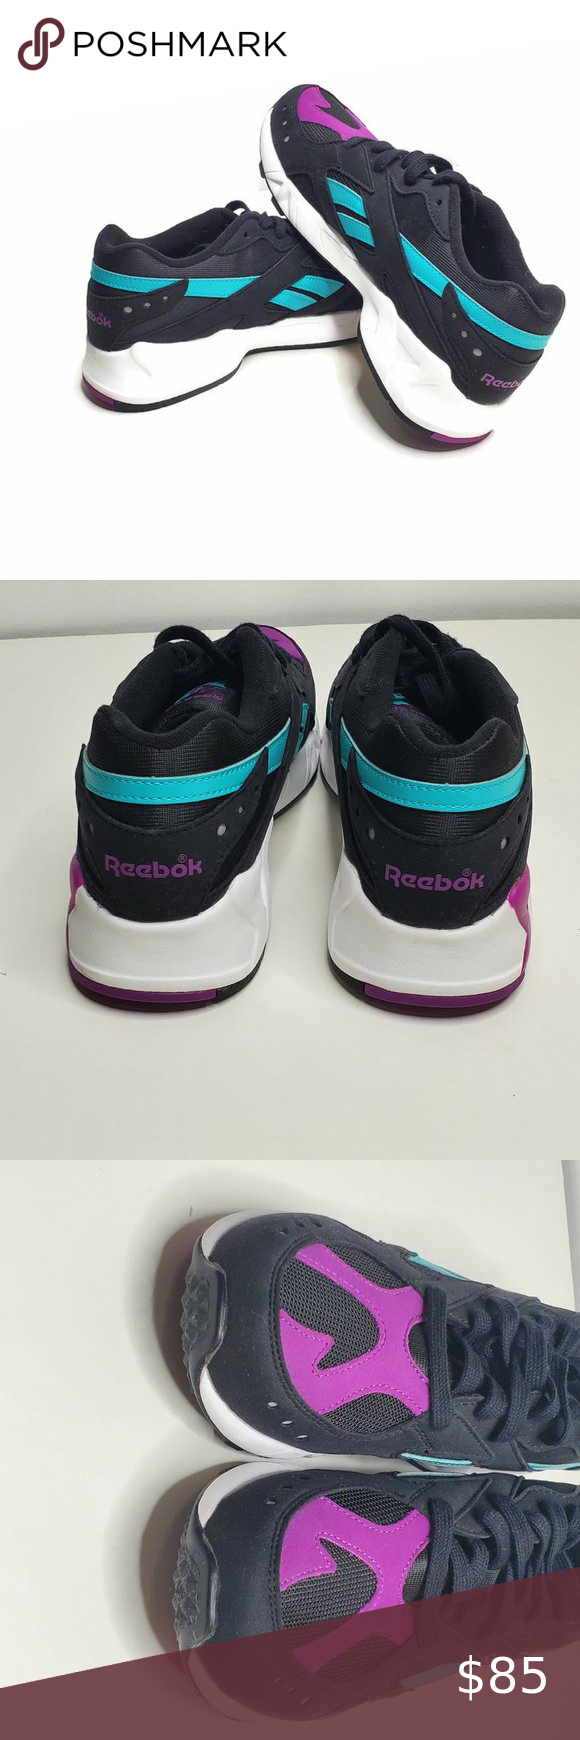 Llevar Espacioso junio  Reebok Aztrek Mens Sneakers Purple Teal Black Sz 7 in 2020 | Sneakers men,  Sneakers, Purple teal